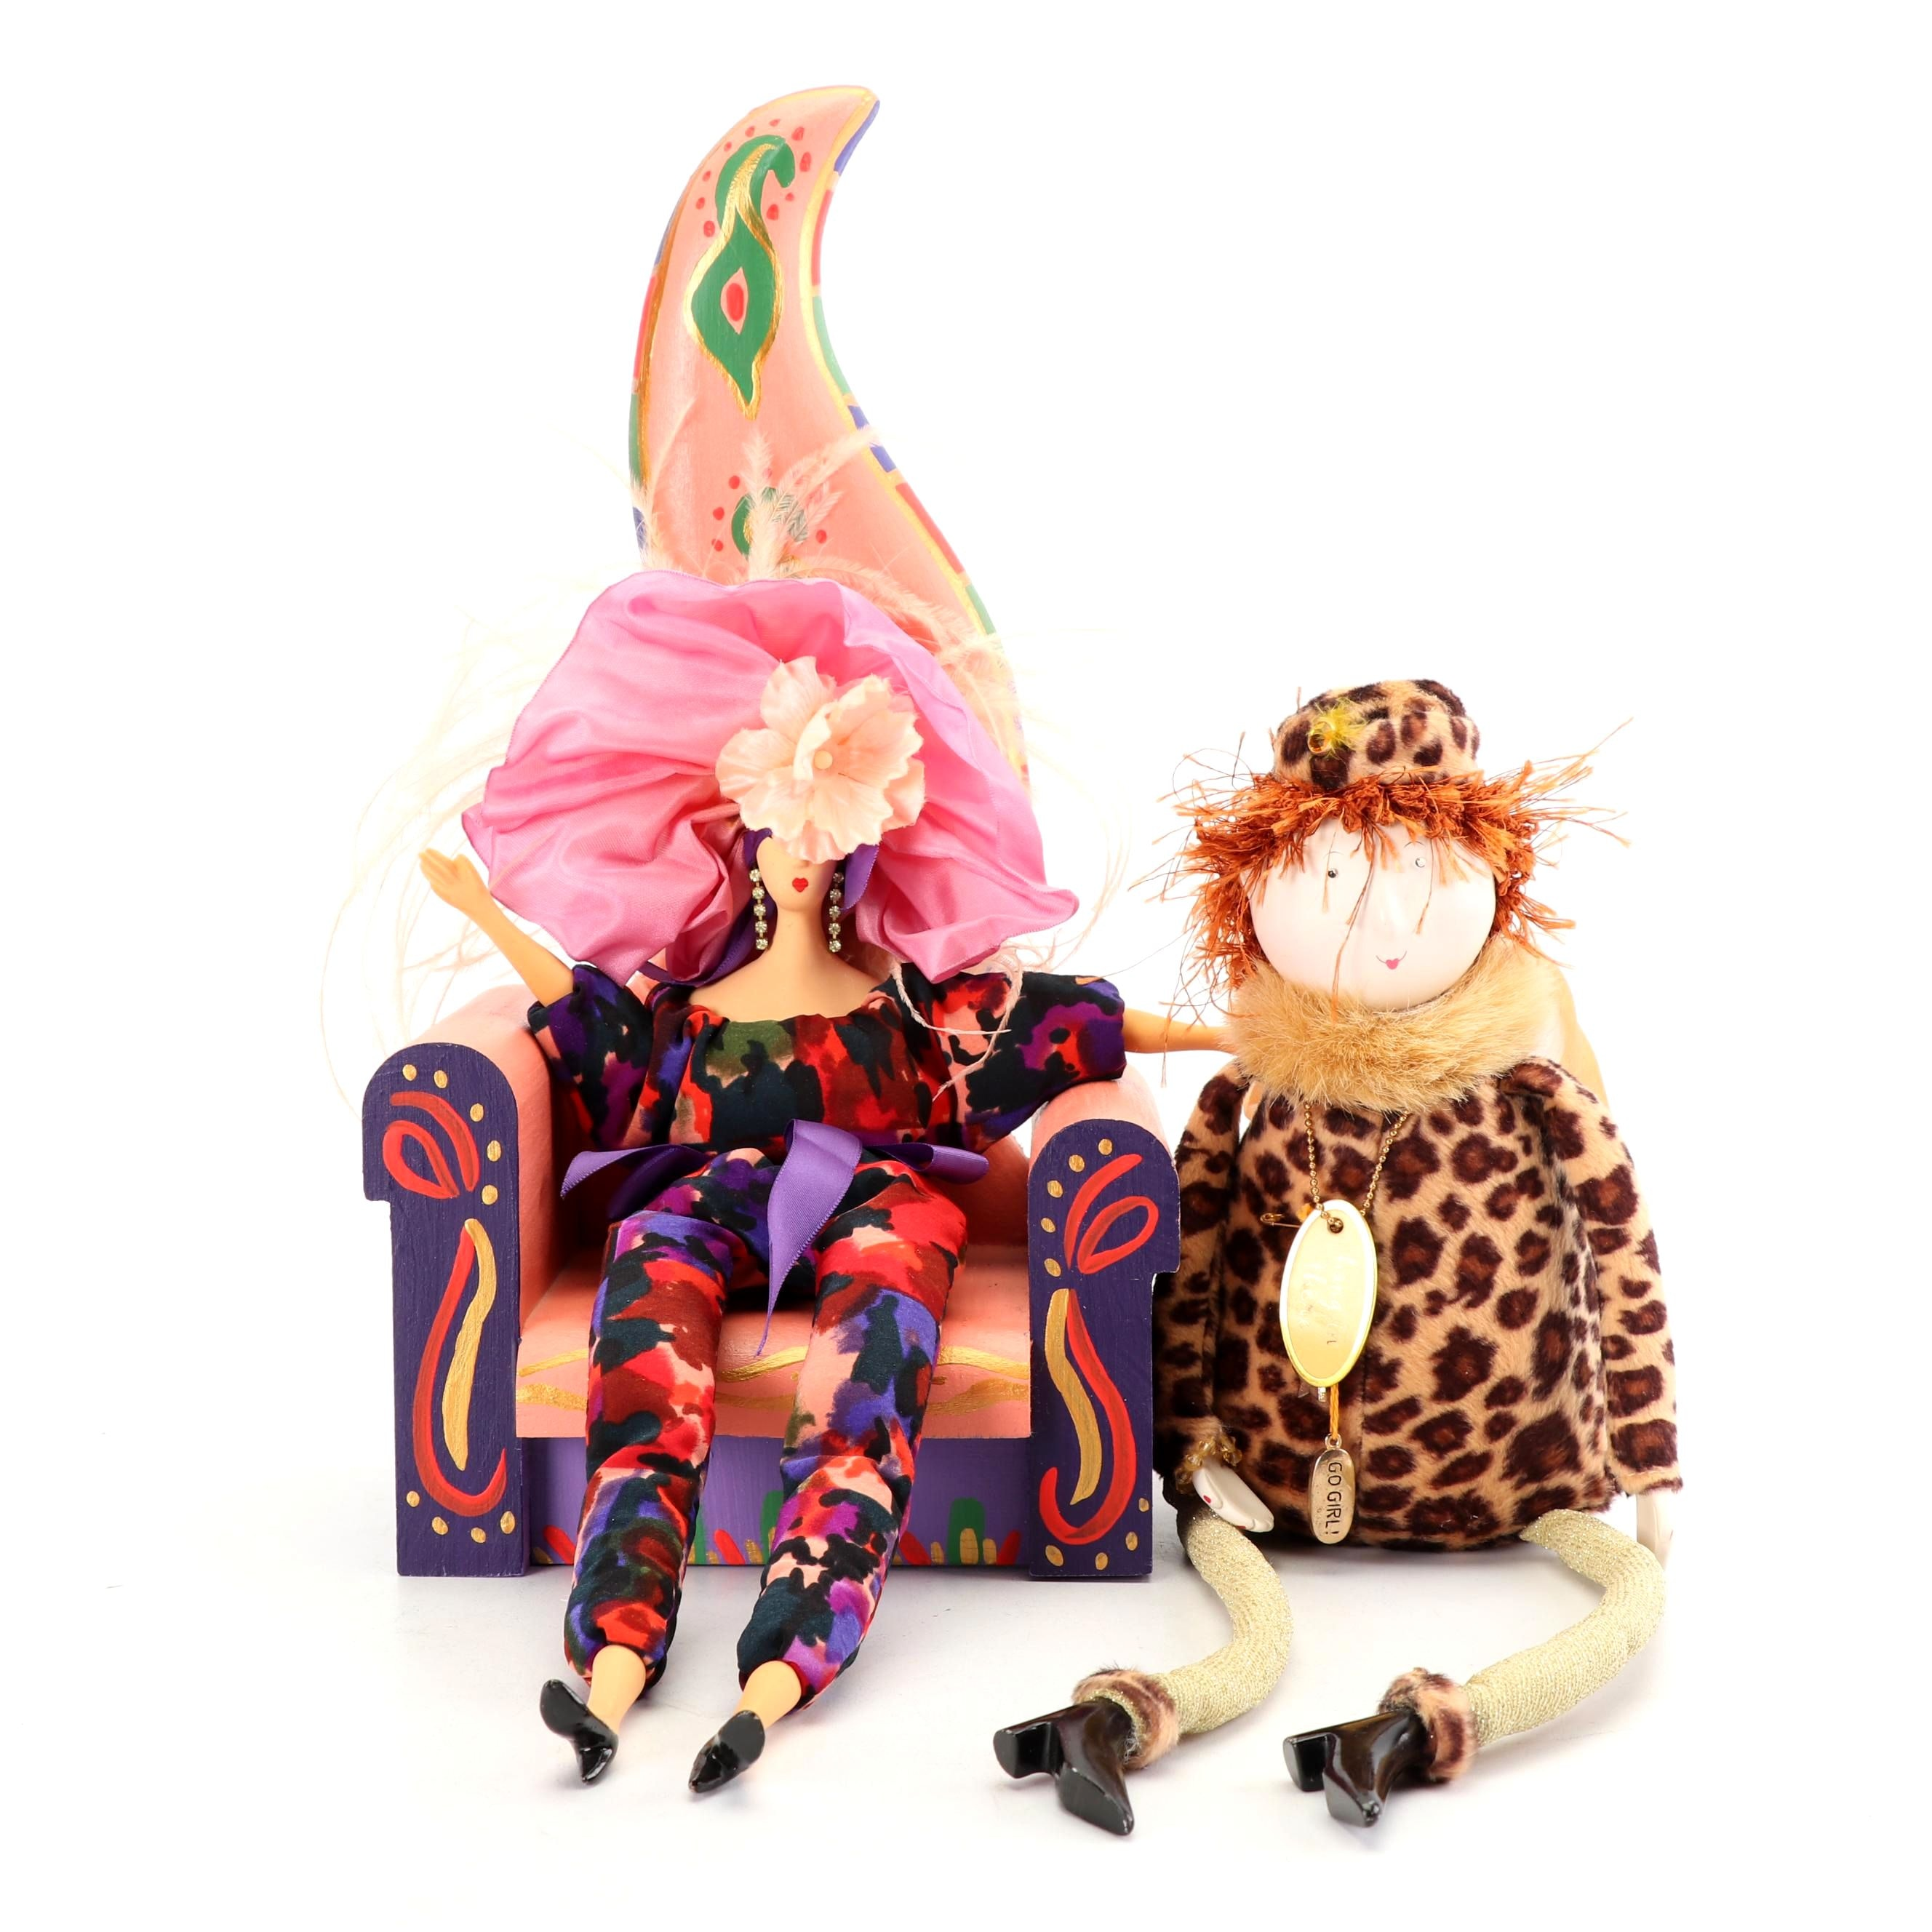 Rigodon French Poupée and Folk Art Doll with Isabella Doll Chair, 1990s